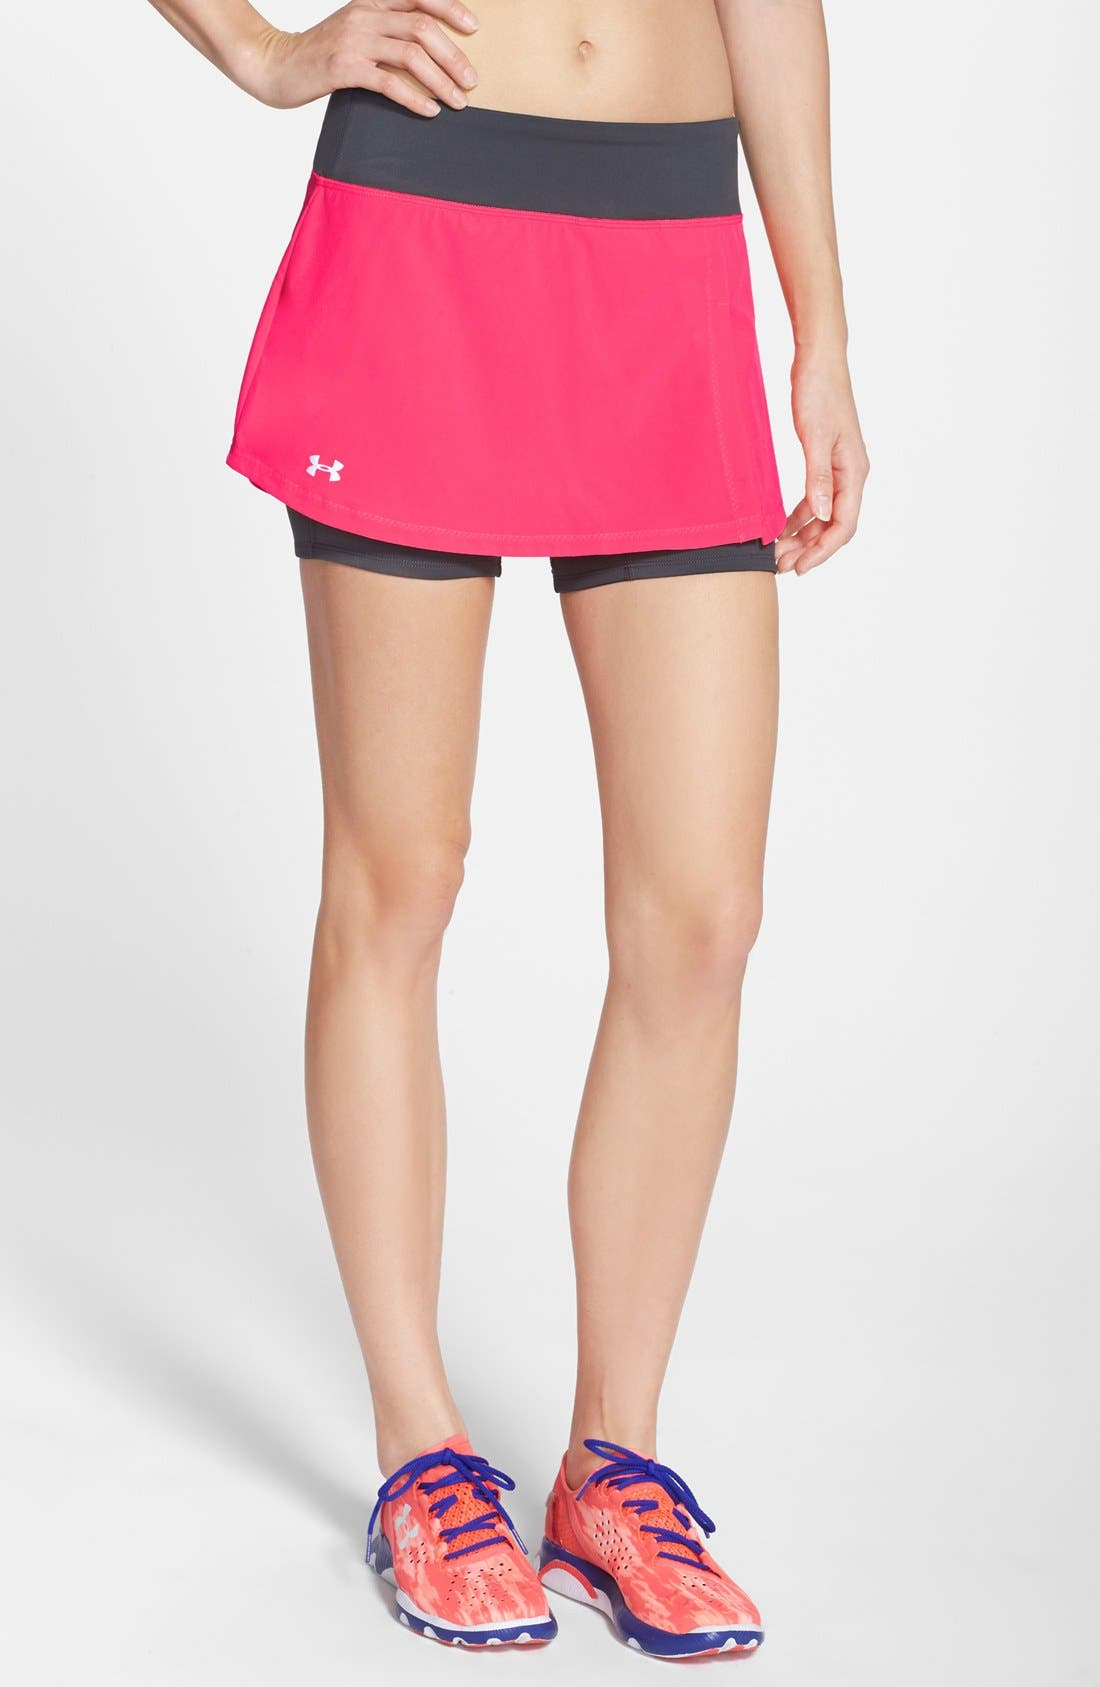 Main Image - Under Armour 'Get Set Go' Skort